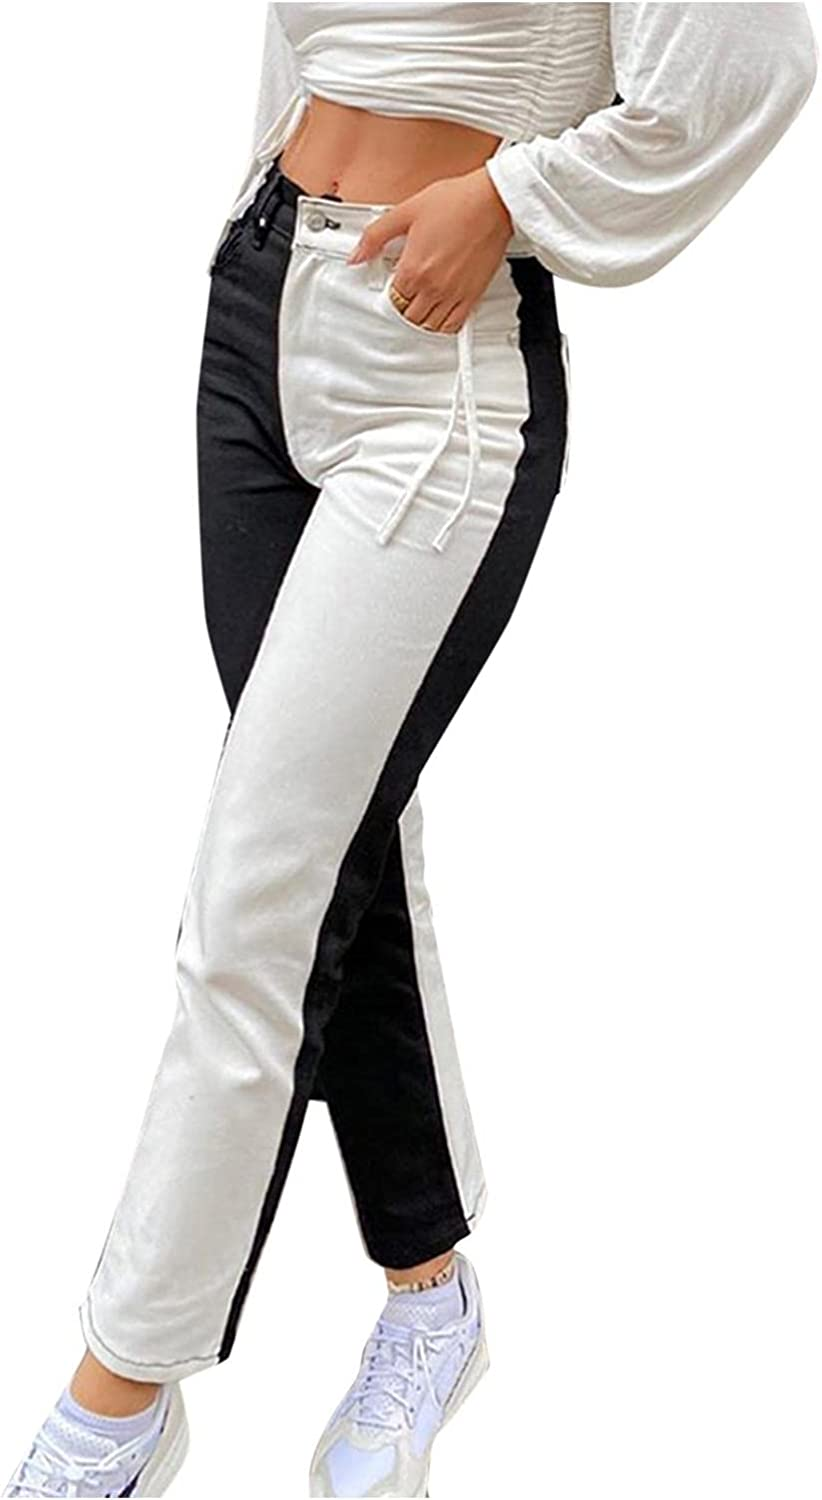 Aiouios Y2K Fashion Jeans for Women High Waisted Contrast ColorJeans Stretch Casual Patchwork Denim Pants Streetwear